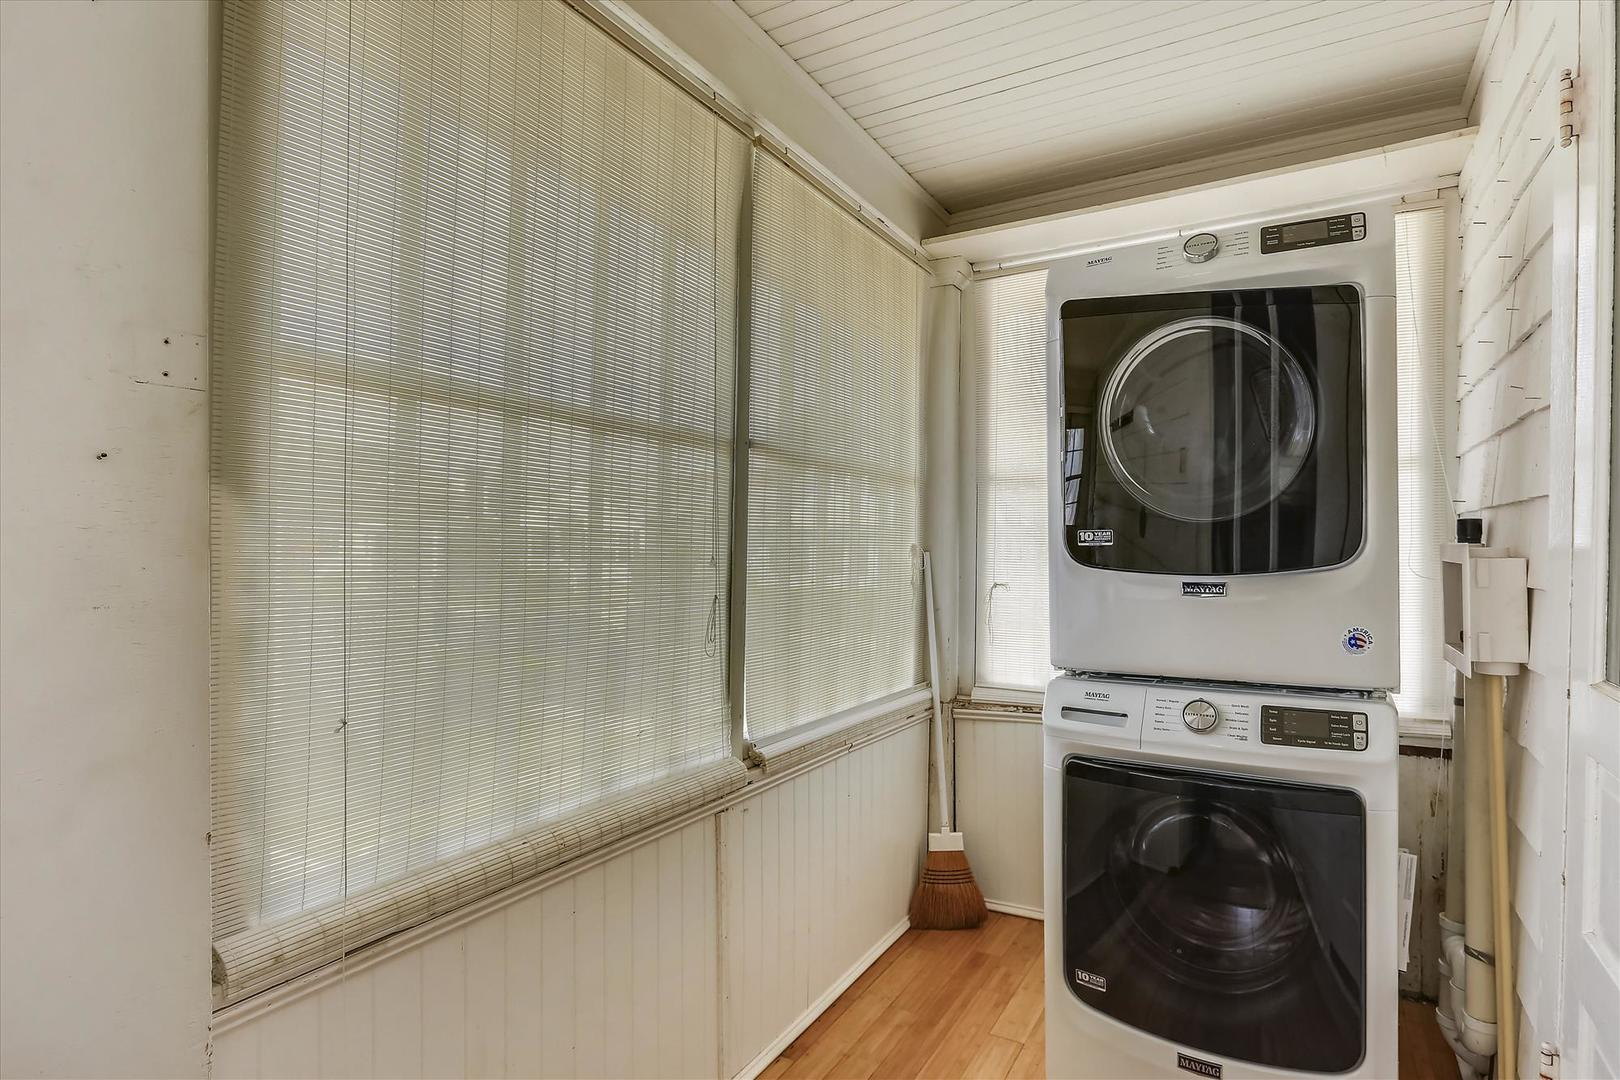 509 Philadelphia Ave. - Washer and Dryer